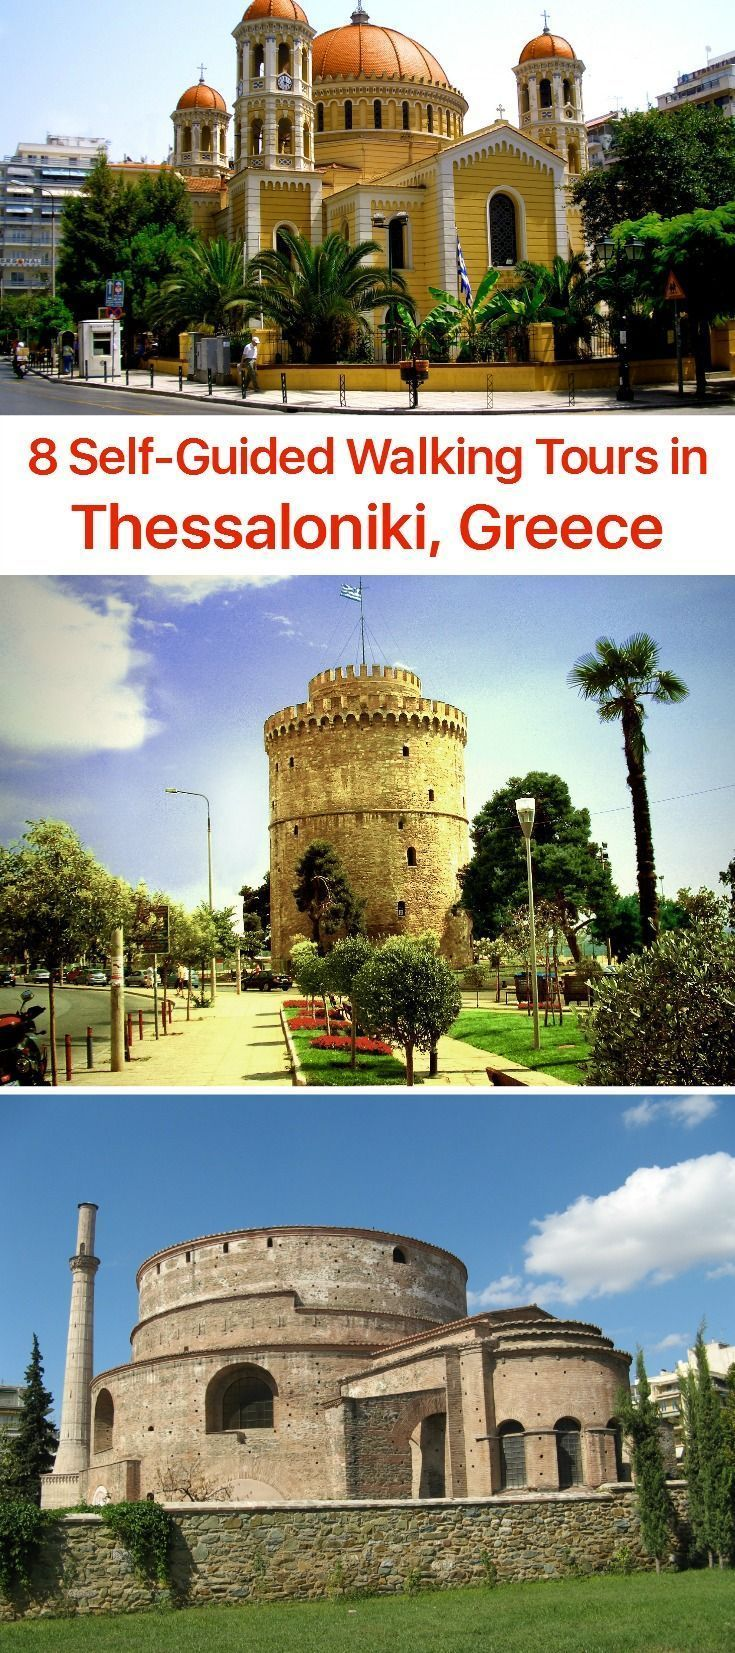 alexander the great policy of fusion The persian policies of alexander the great: from  fusion, and the brotherhood  alexander™s policies and decisions had profound consequences for the greek and .